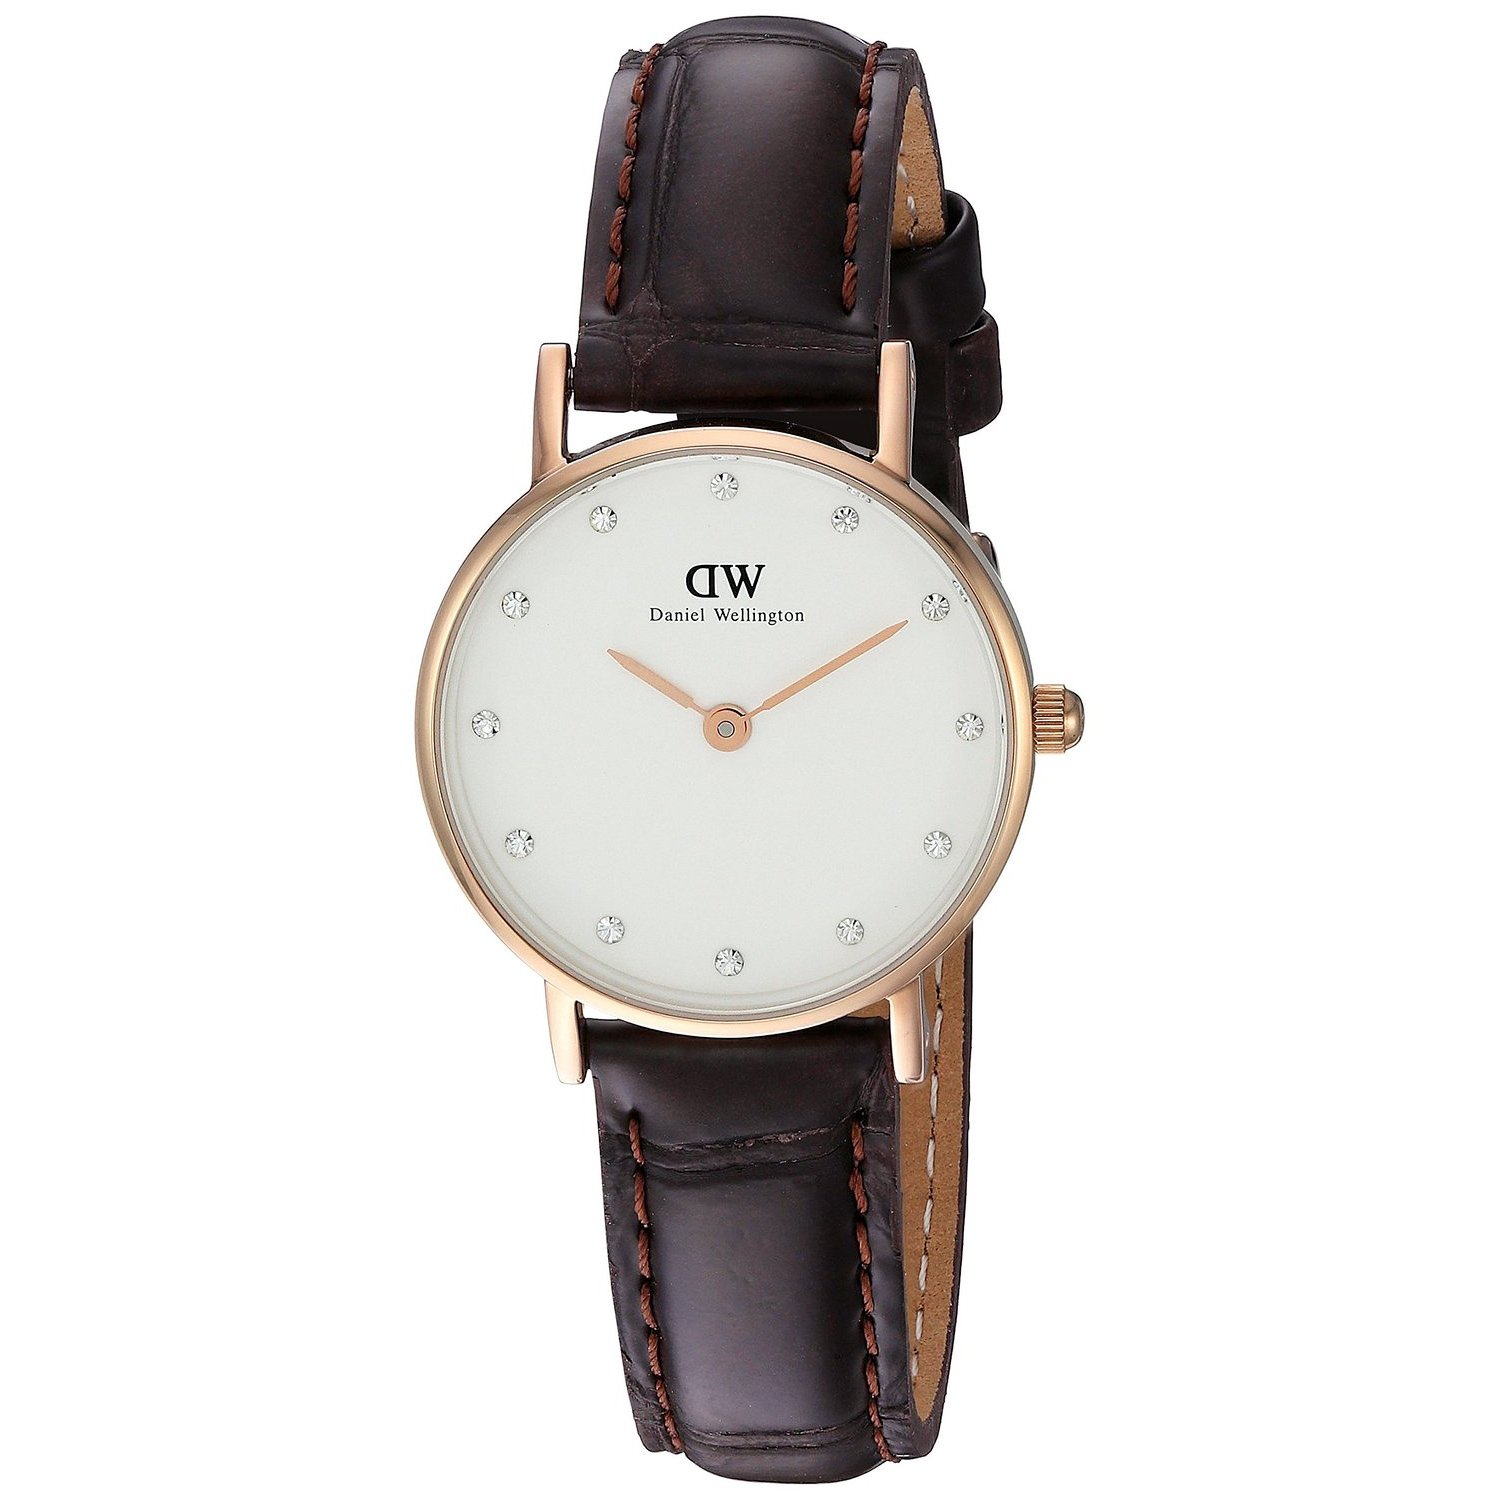 bracelet daniel wellington femme cuir. Black Bedroom Furniture Sets. Home Design Ideas